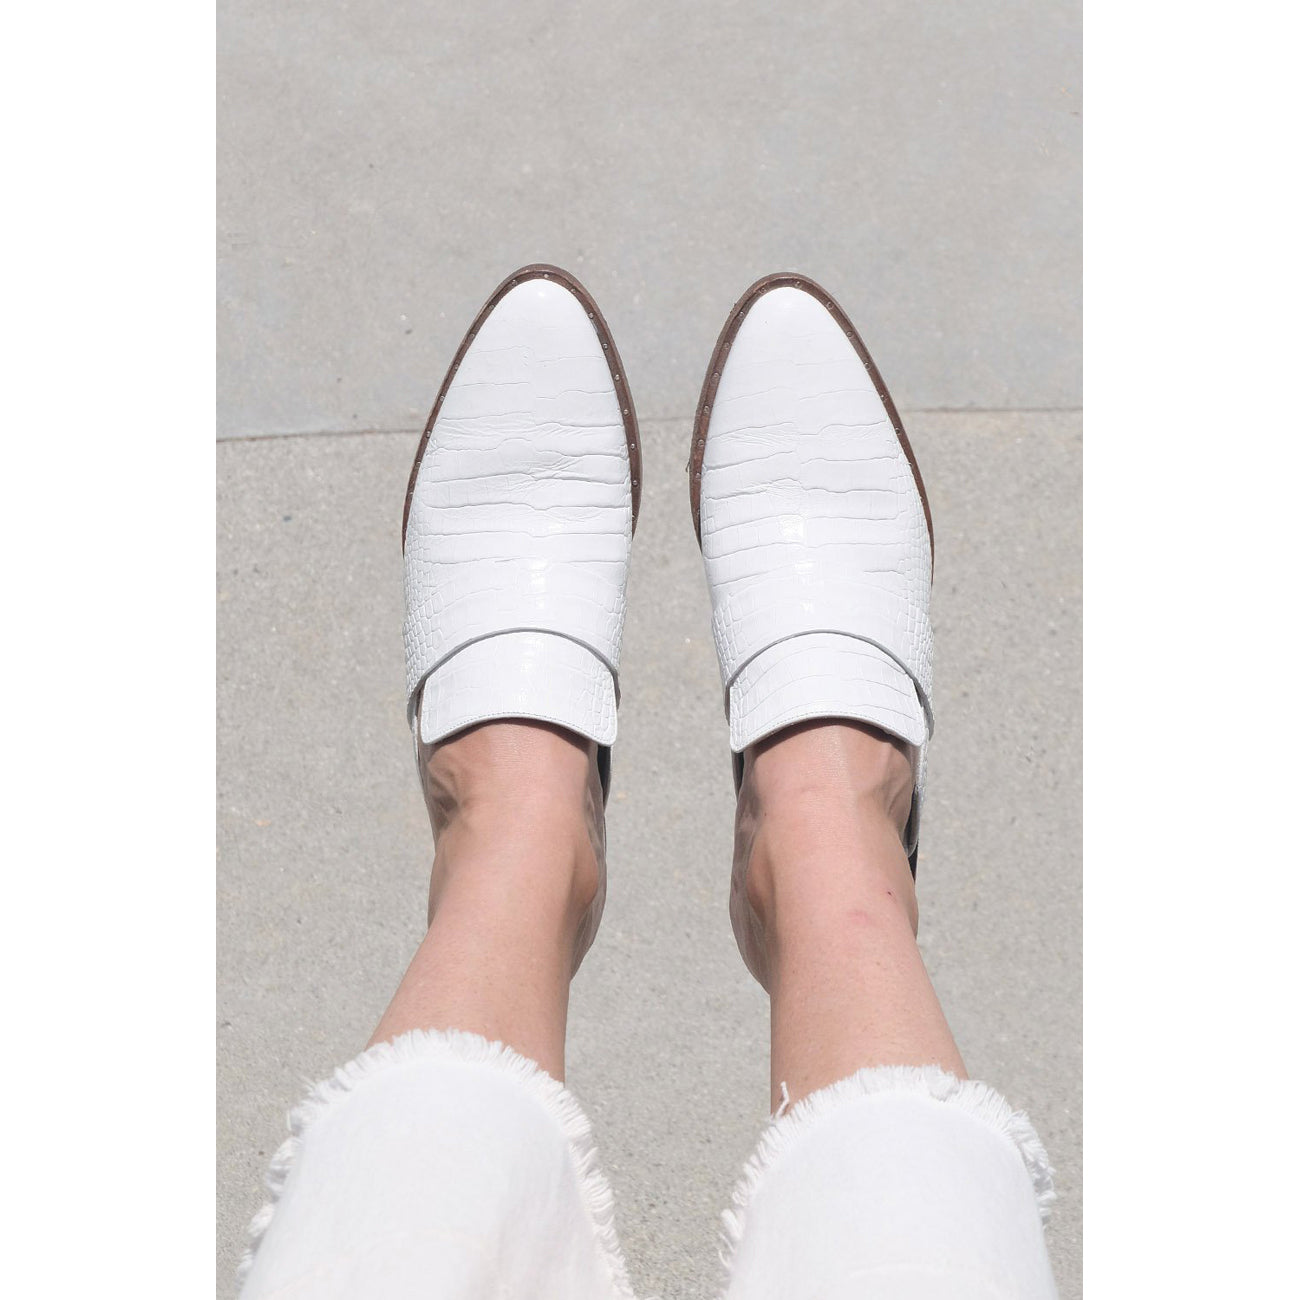 Freda Salvador Keen Mule in White Embossed Croc